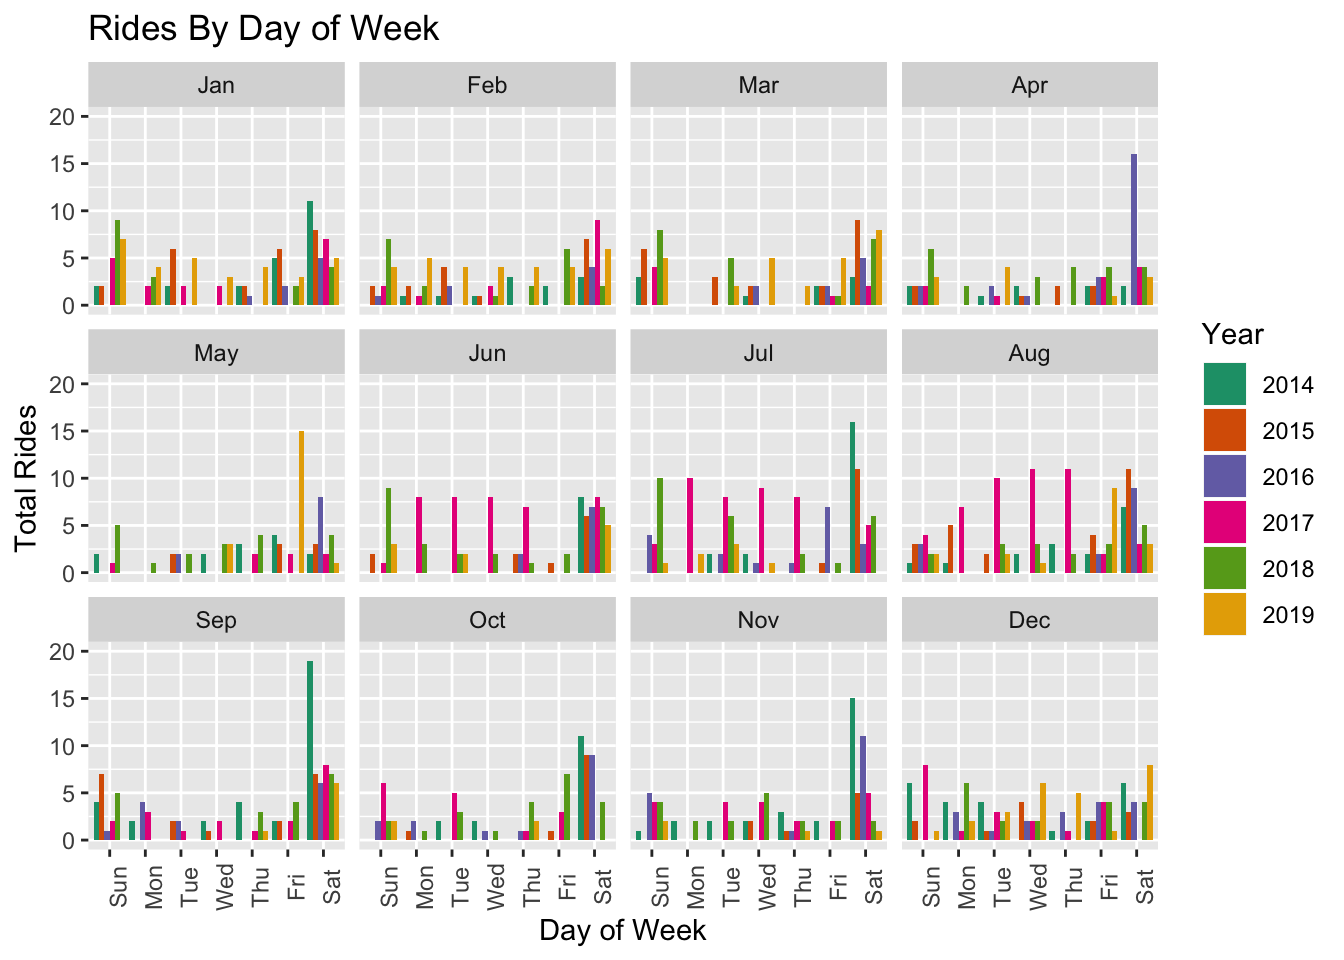 Year-over-year Rides by Day of Week and Month